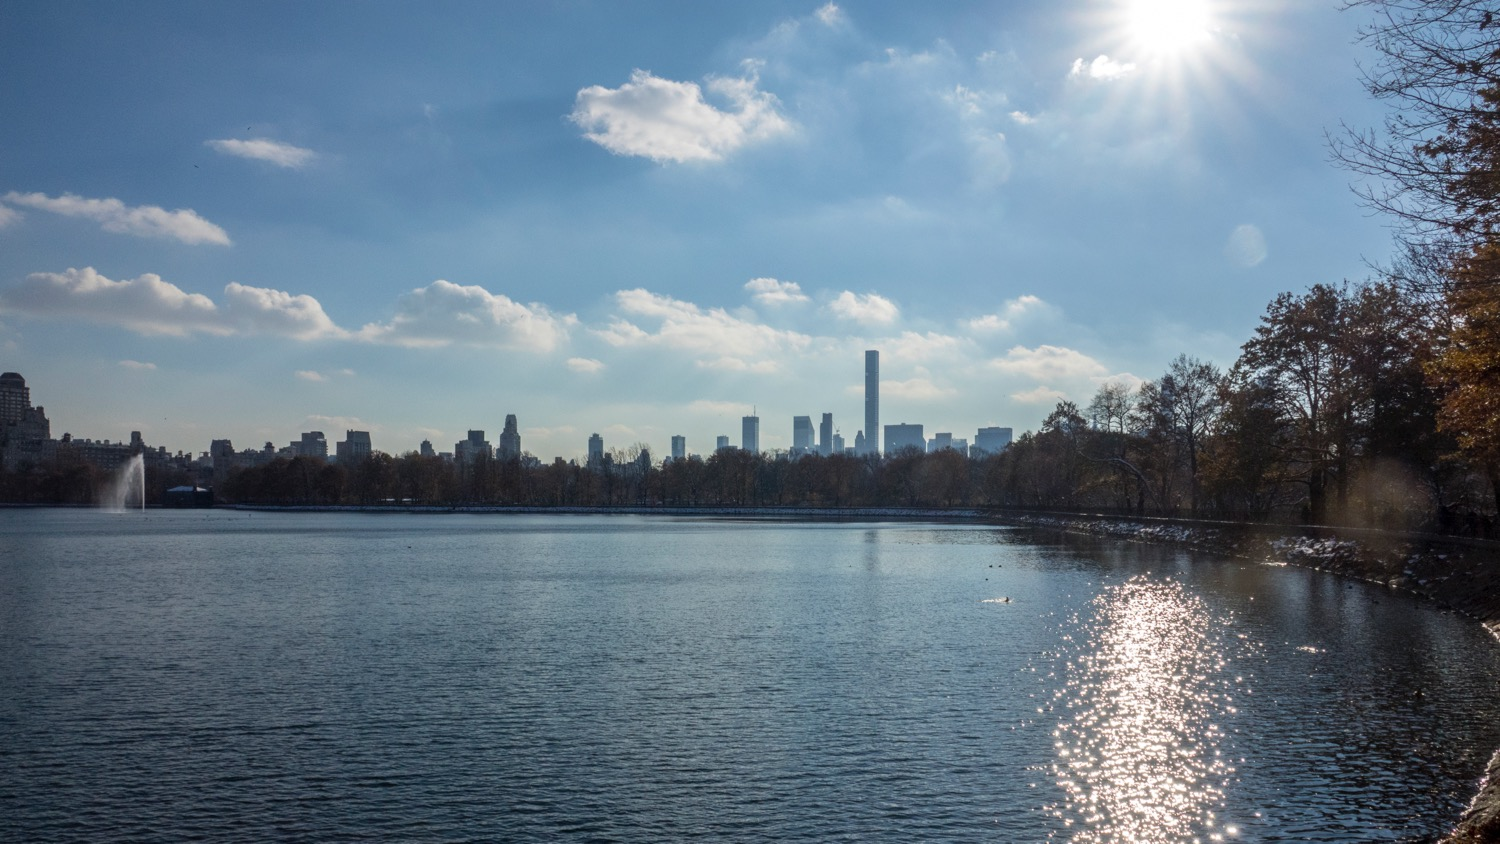 We entered the park close to the Jacqueline Kennedy Onassis Reservoir.